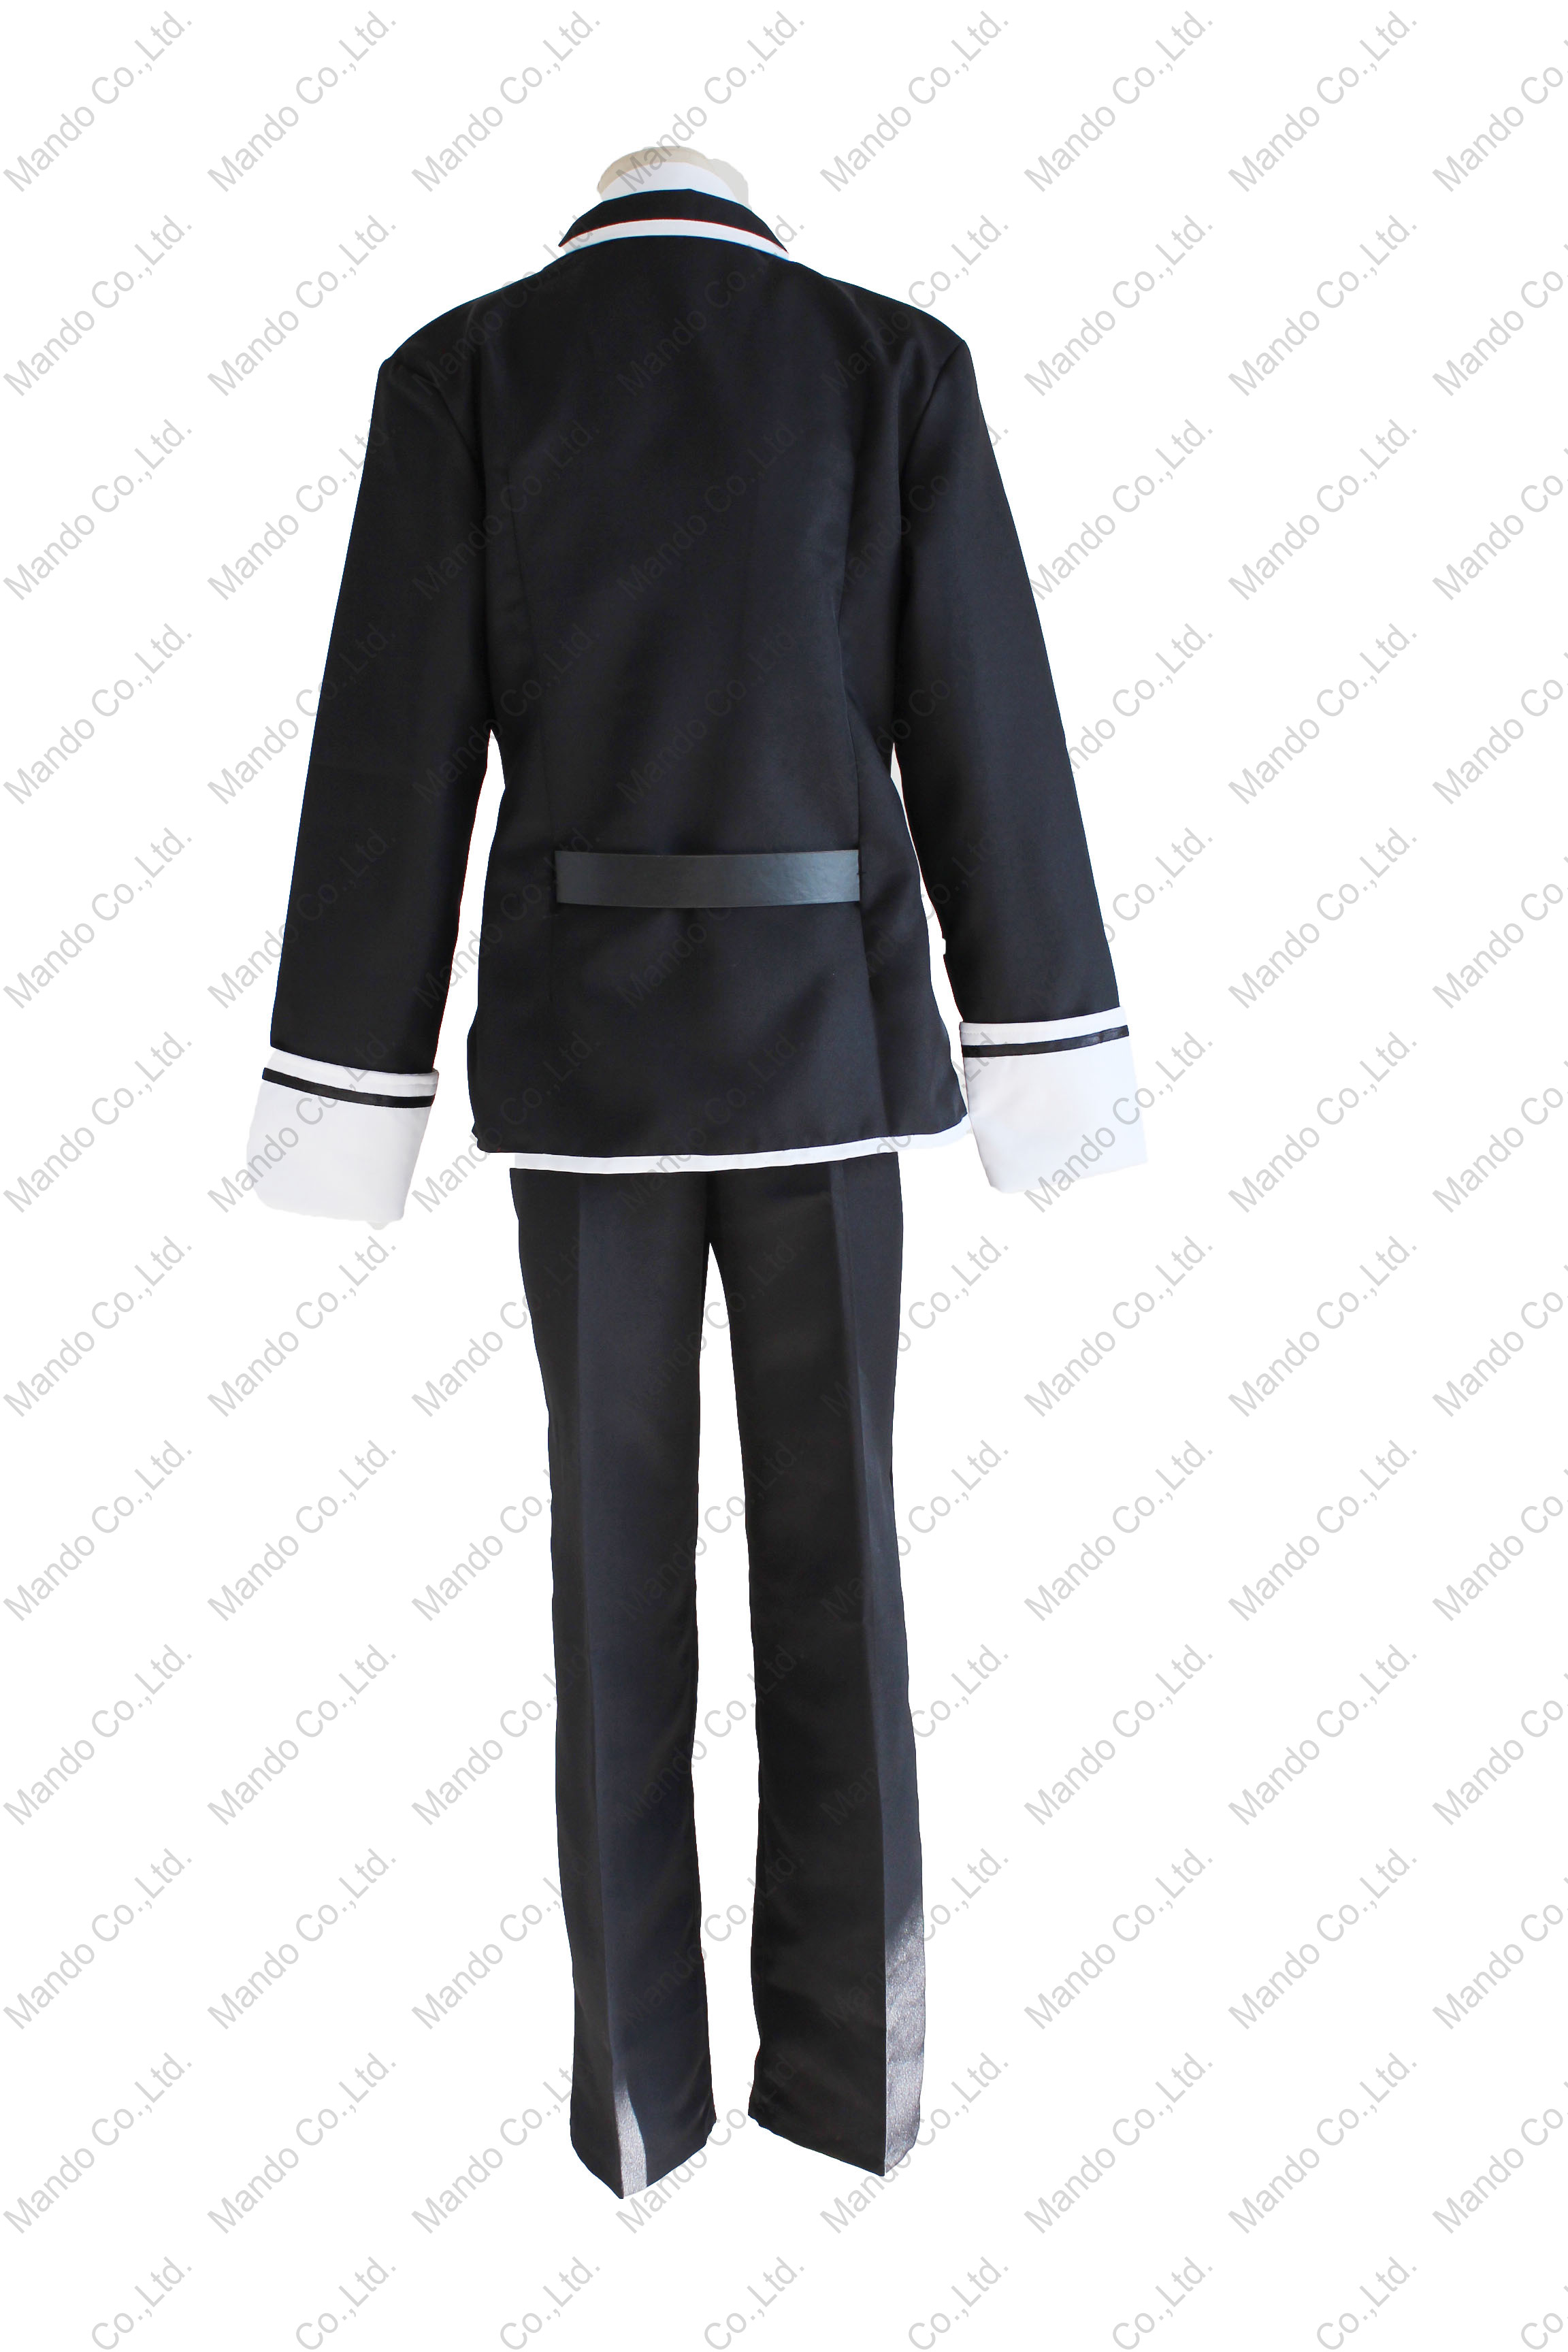 Anime DIABOLIK LOVERS Sakamaki Ayato Cosplay Costumes hommes costume - Costumes - Photo 4